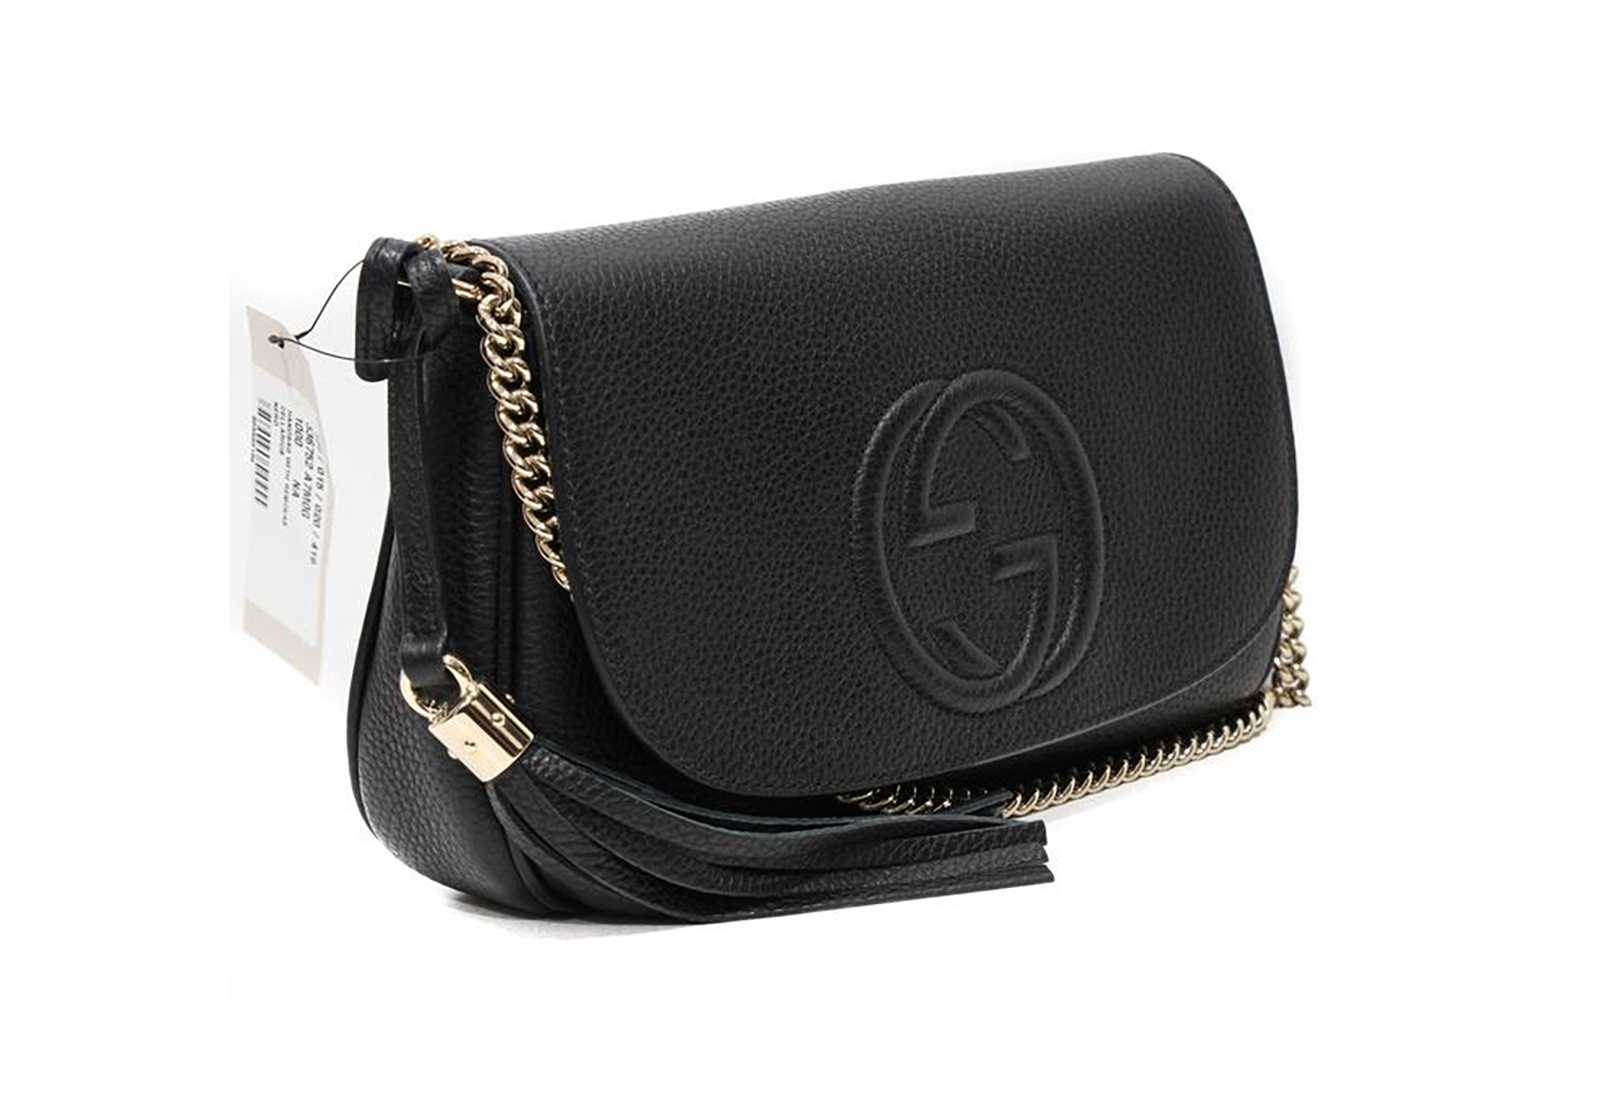 8e55472e378c How to Authenticate Gucci Handbags | LoveToKnow